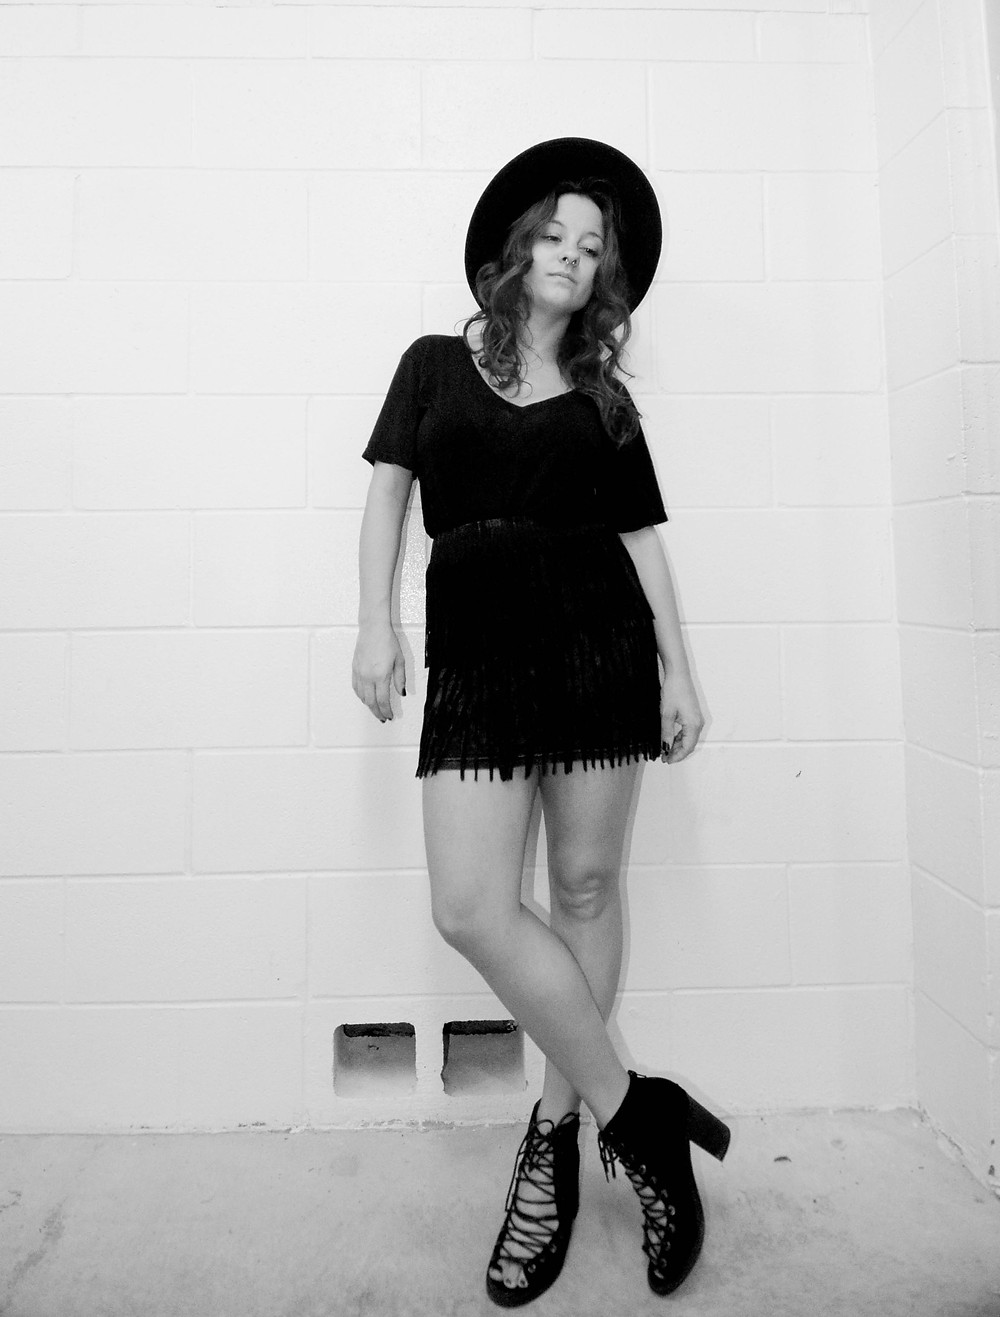 A style blogger wears a black fringe skirt with a black T-shirt and medium-brim fedora.